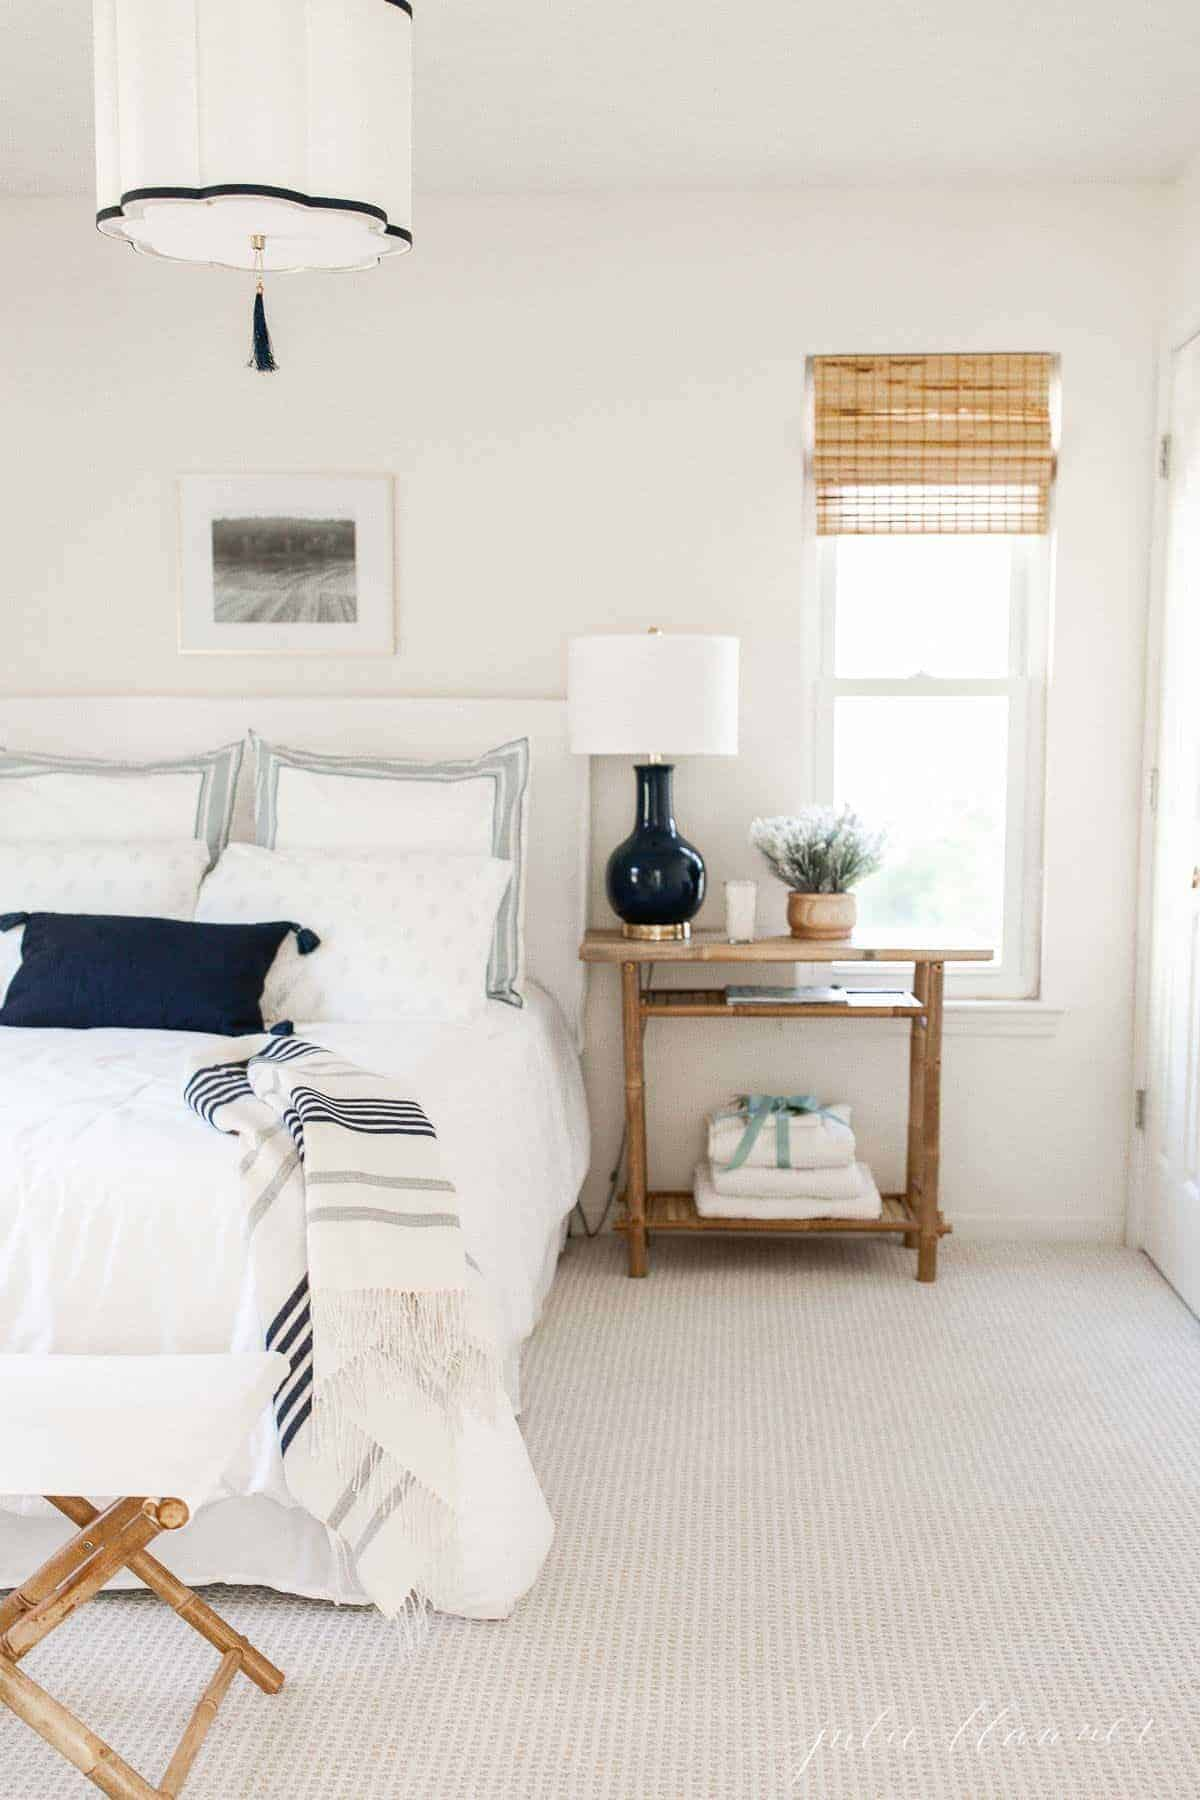 A white guest room with blue accents.